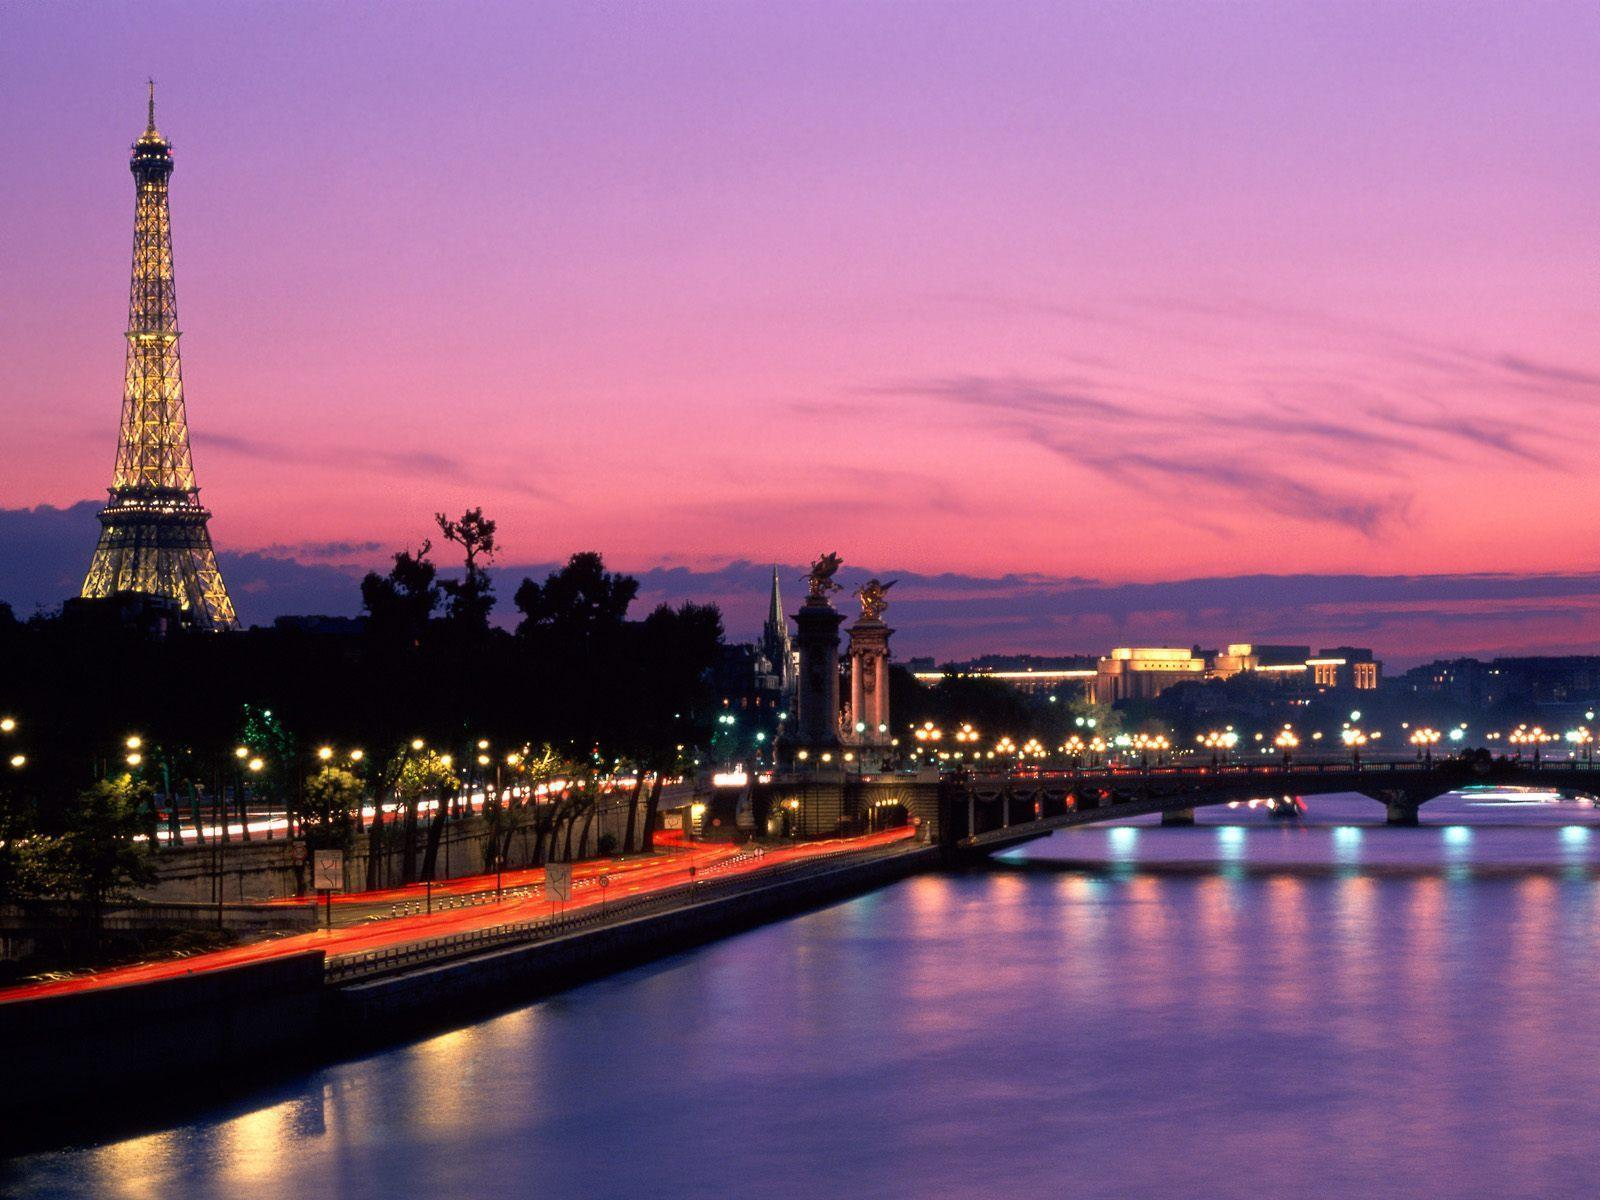 paris screensavers, desktop backgrounds paris